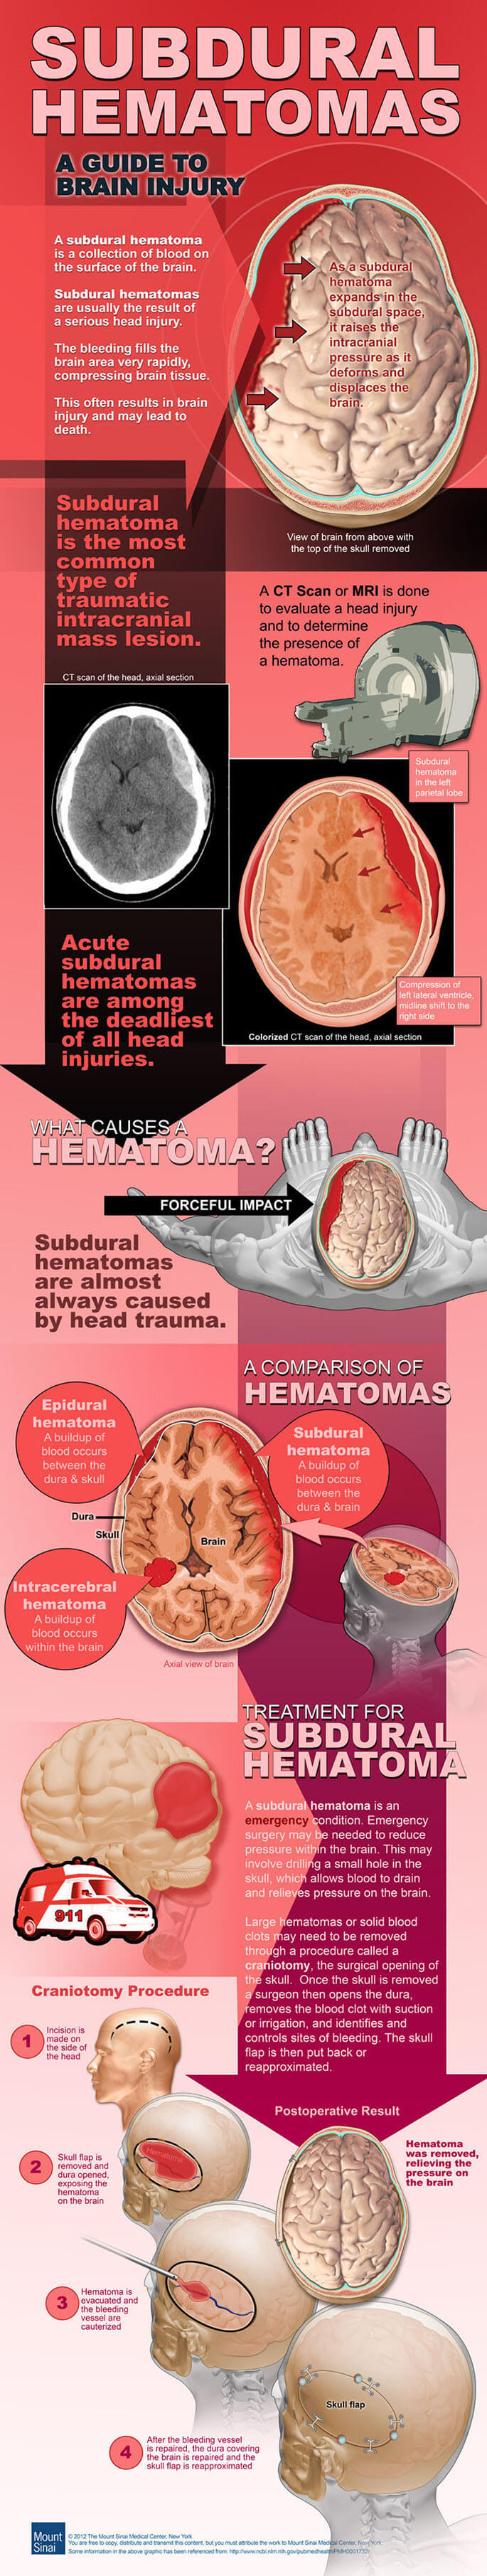 A Guide to Brain Injury and Subdural Hematoma